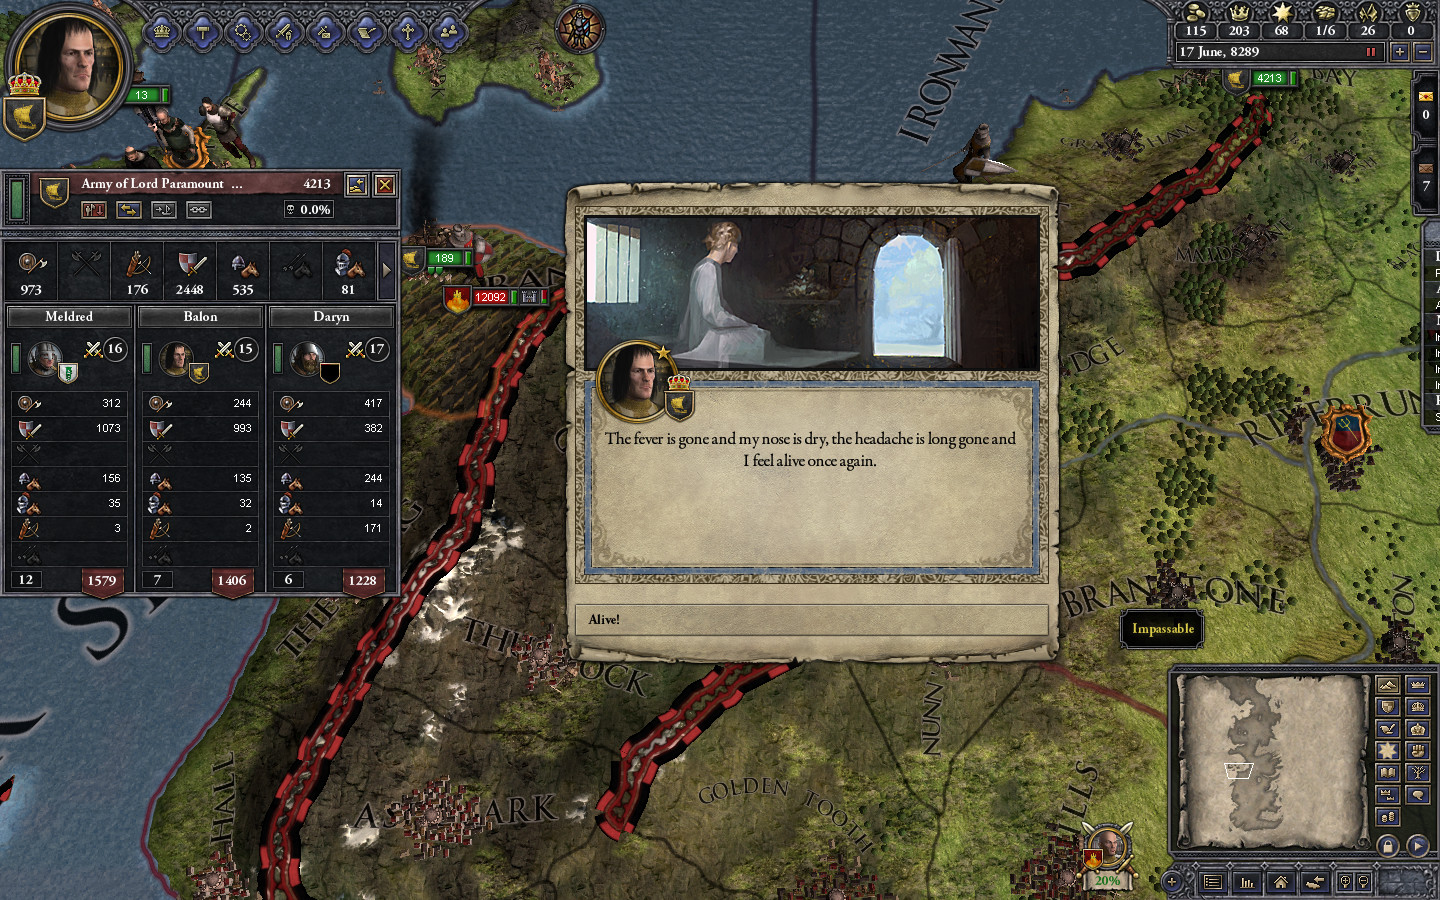 Crusader kings 2 game of thrones mod lannister motto